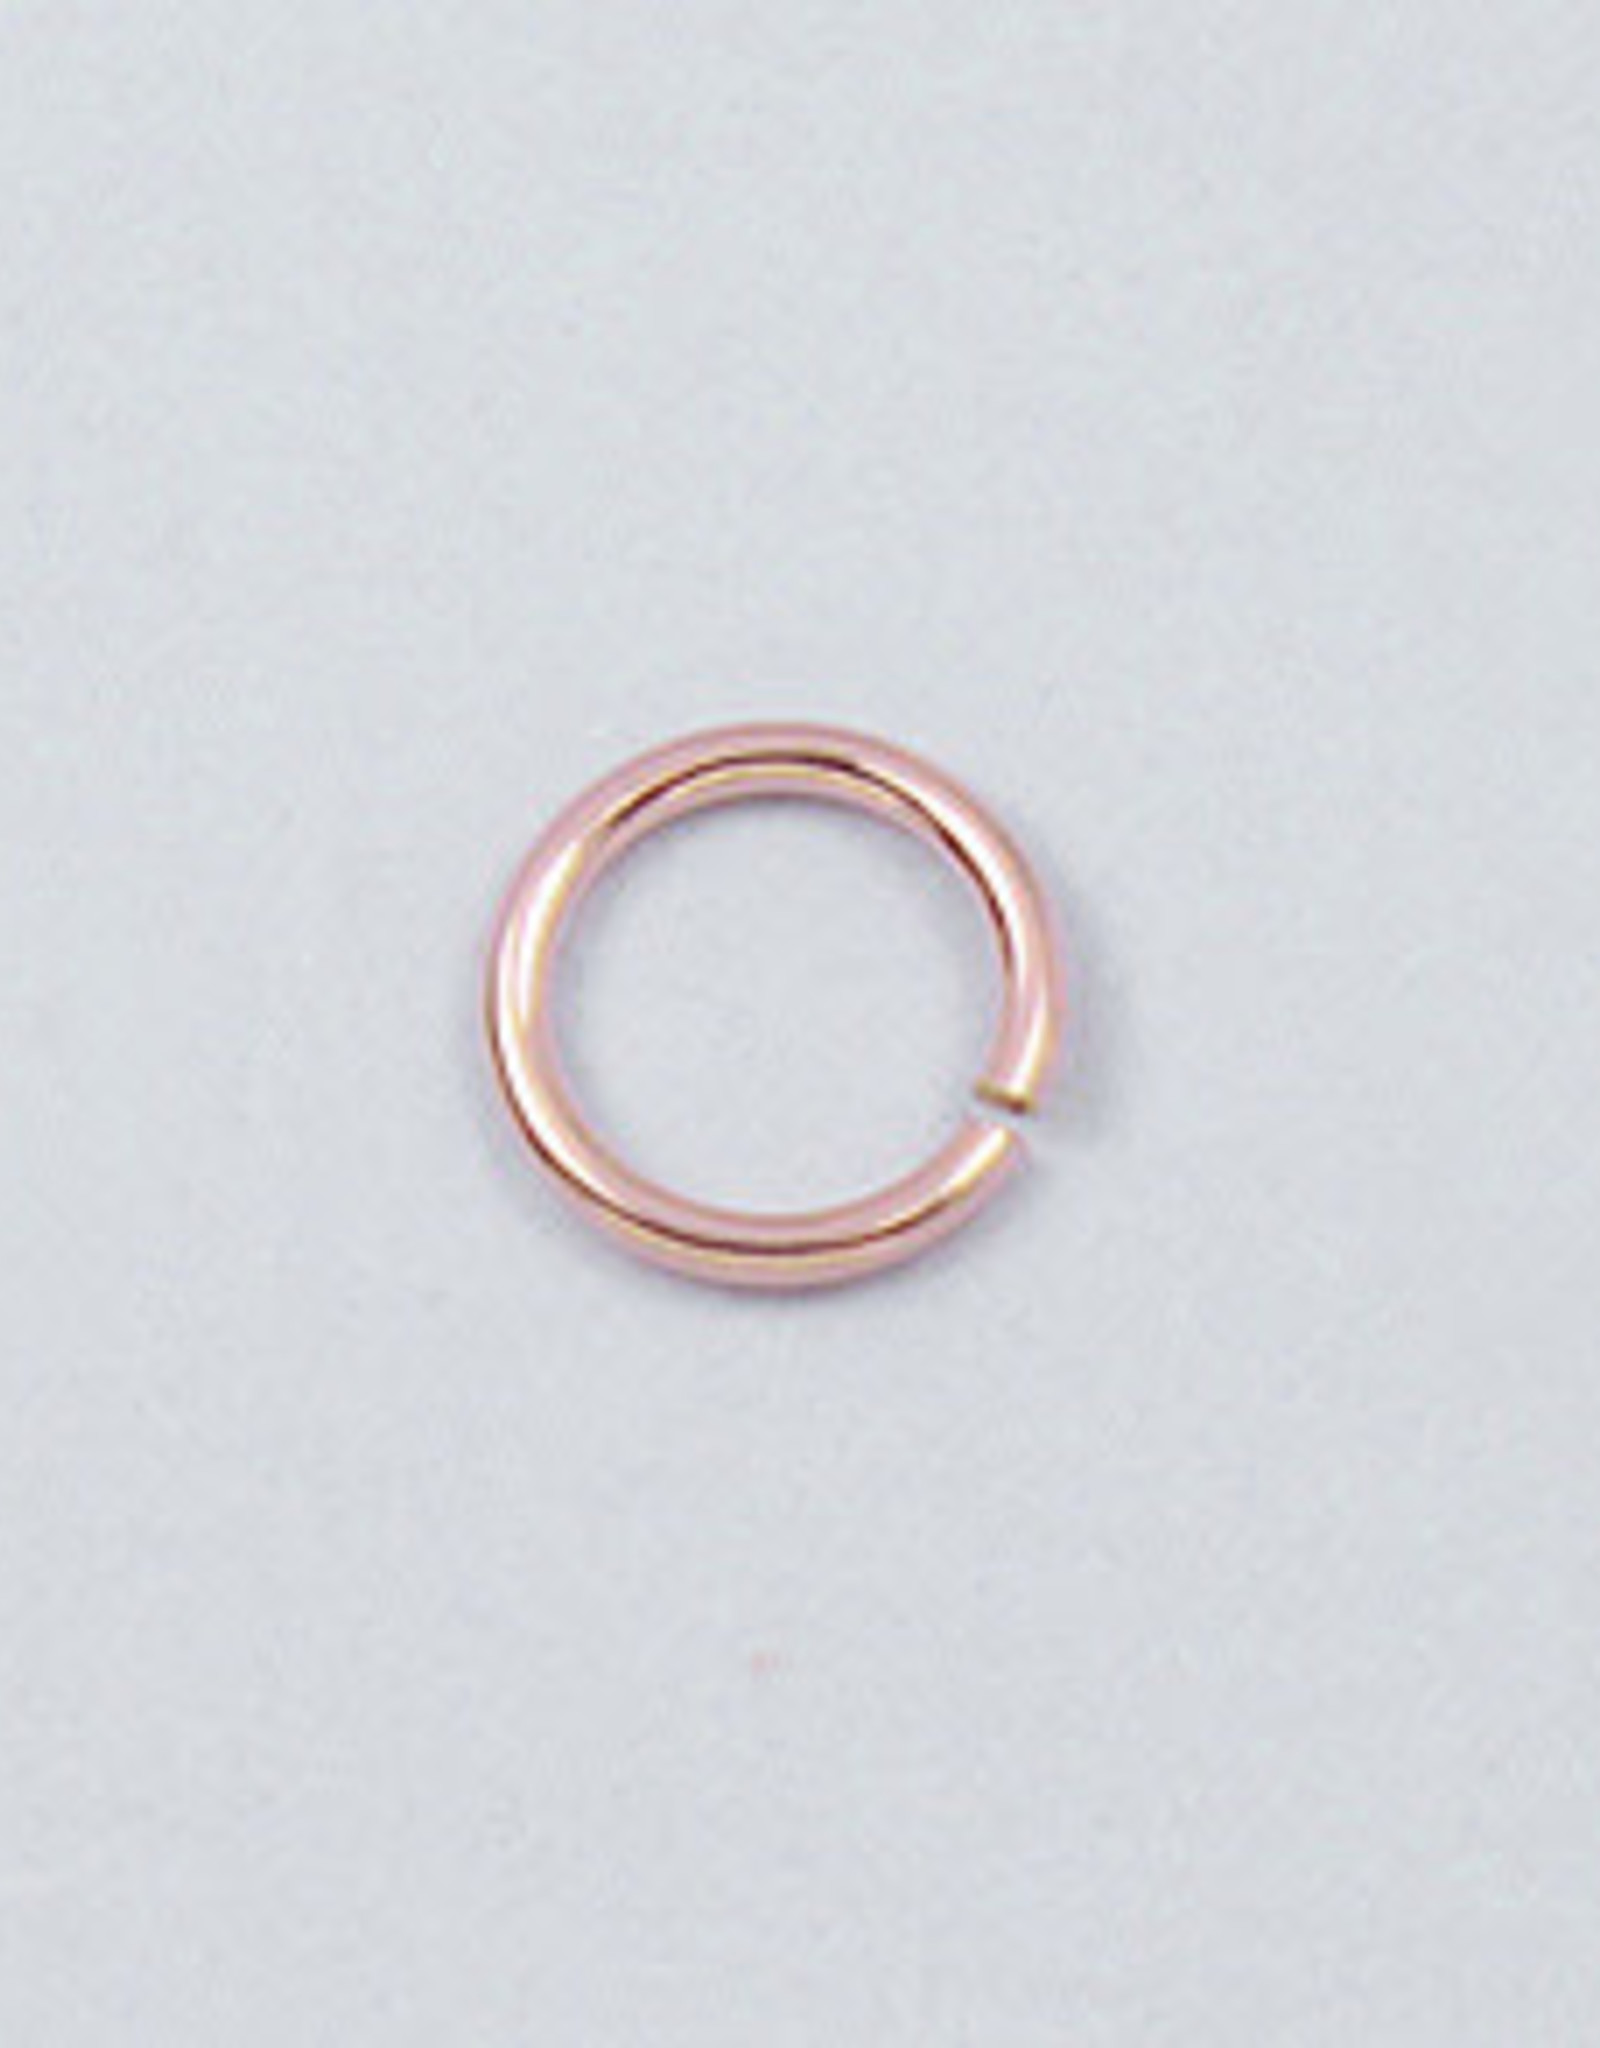 5mm Jump Rings 22ga 14k Rose Gold Filled Qty10